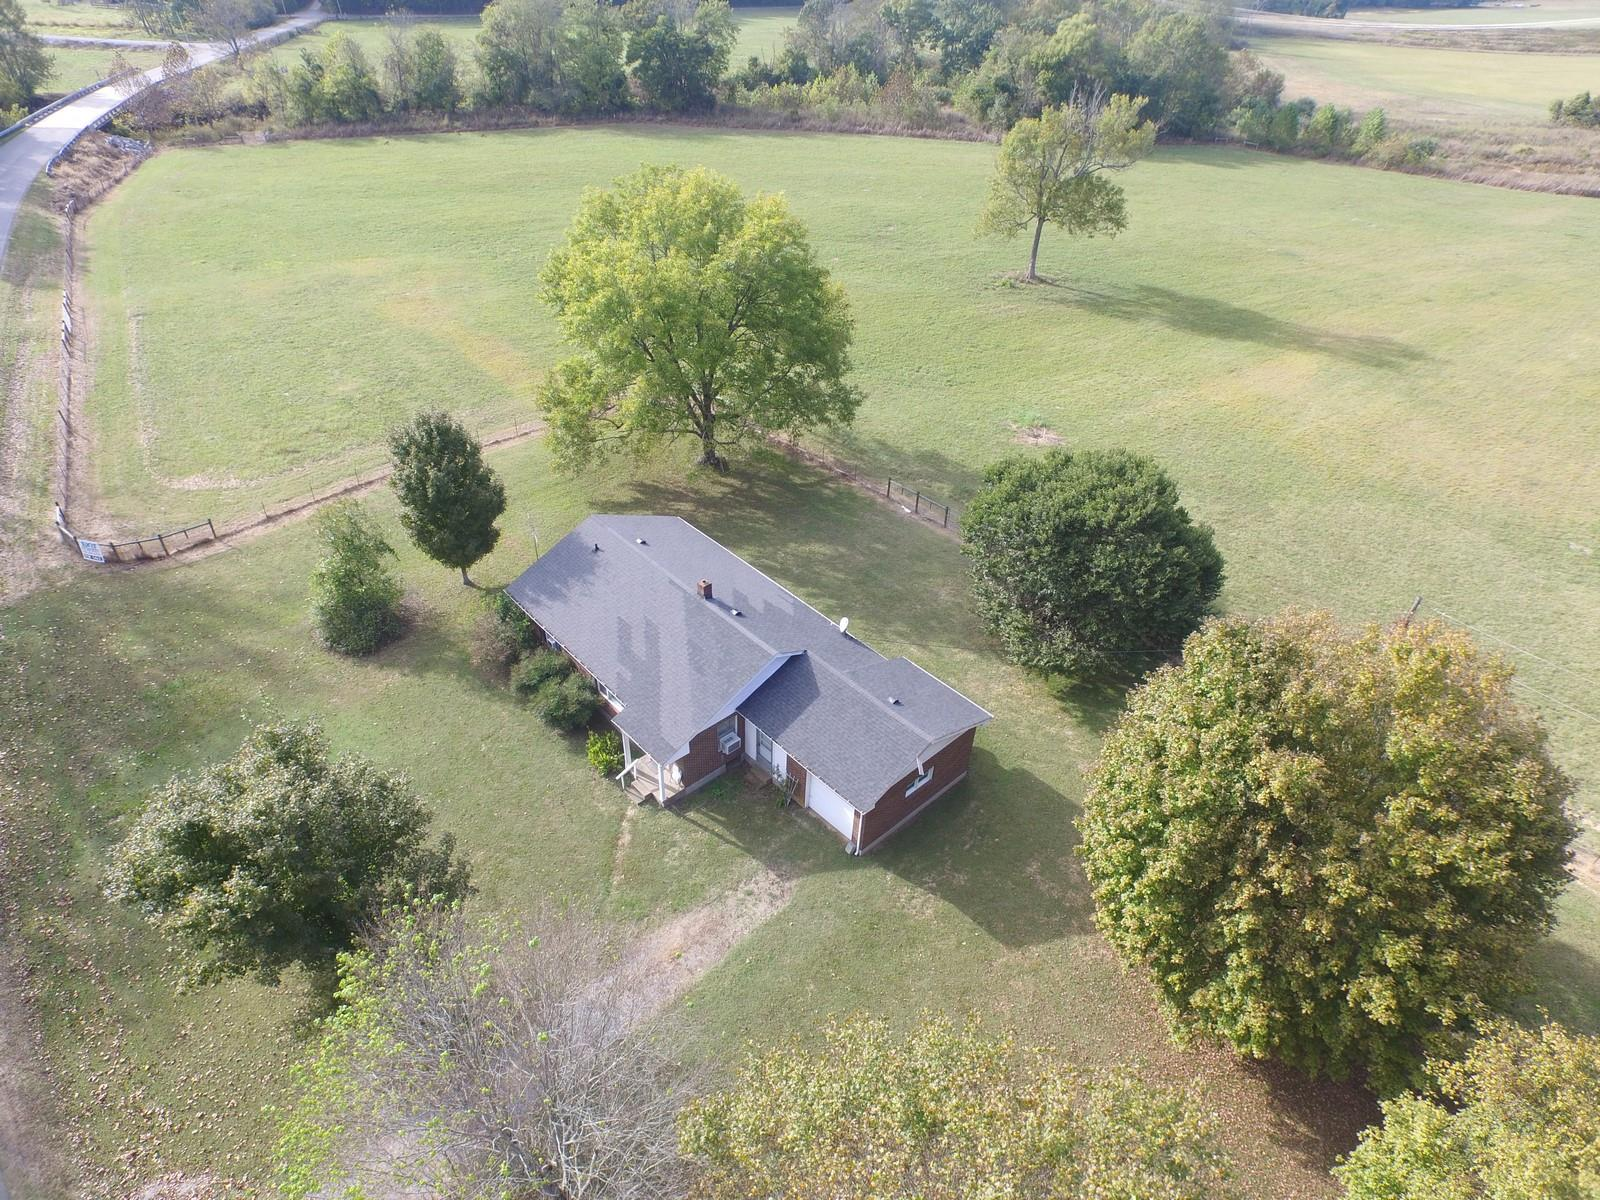 570 Piney Rd W, Dickson, TN 37055 - Dickson, TN real estate listing